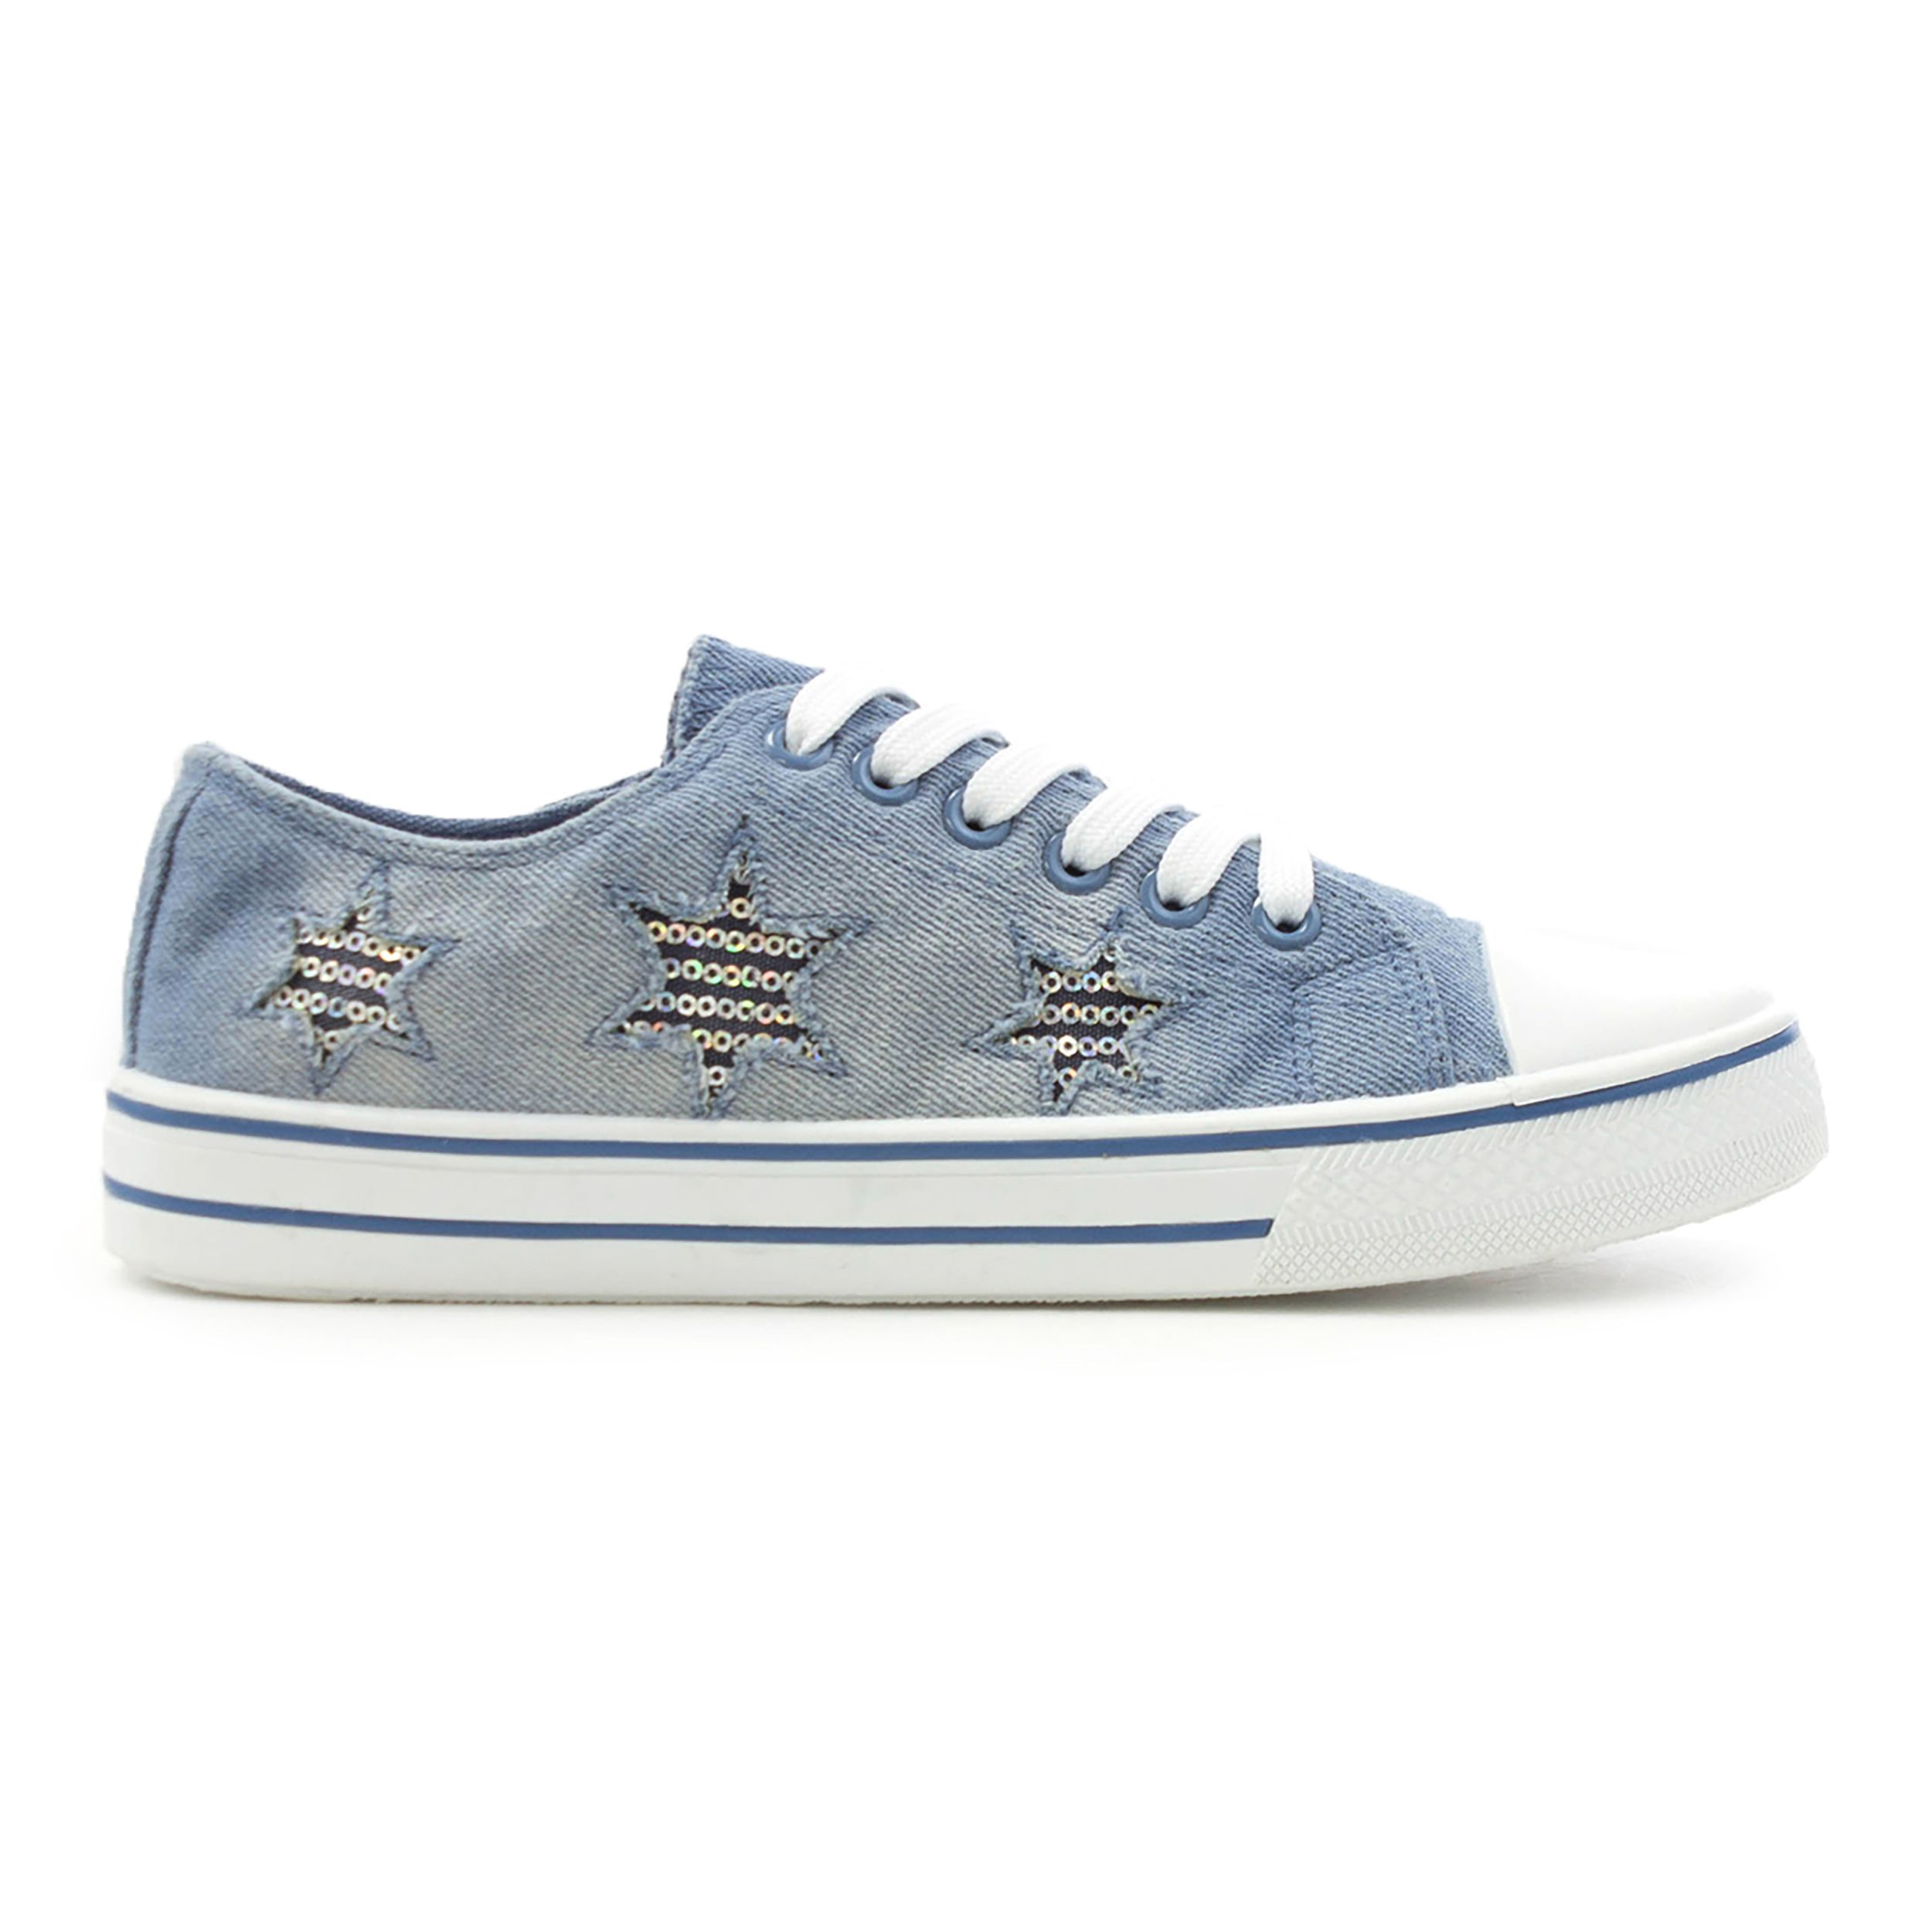 789c87cdc959 Lilley Womens Washed Denim Lace Up Canvas